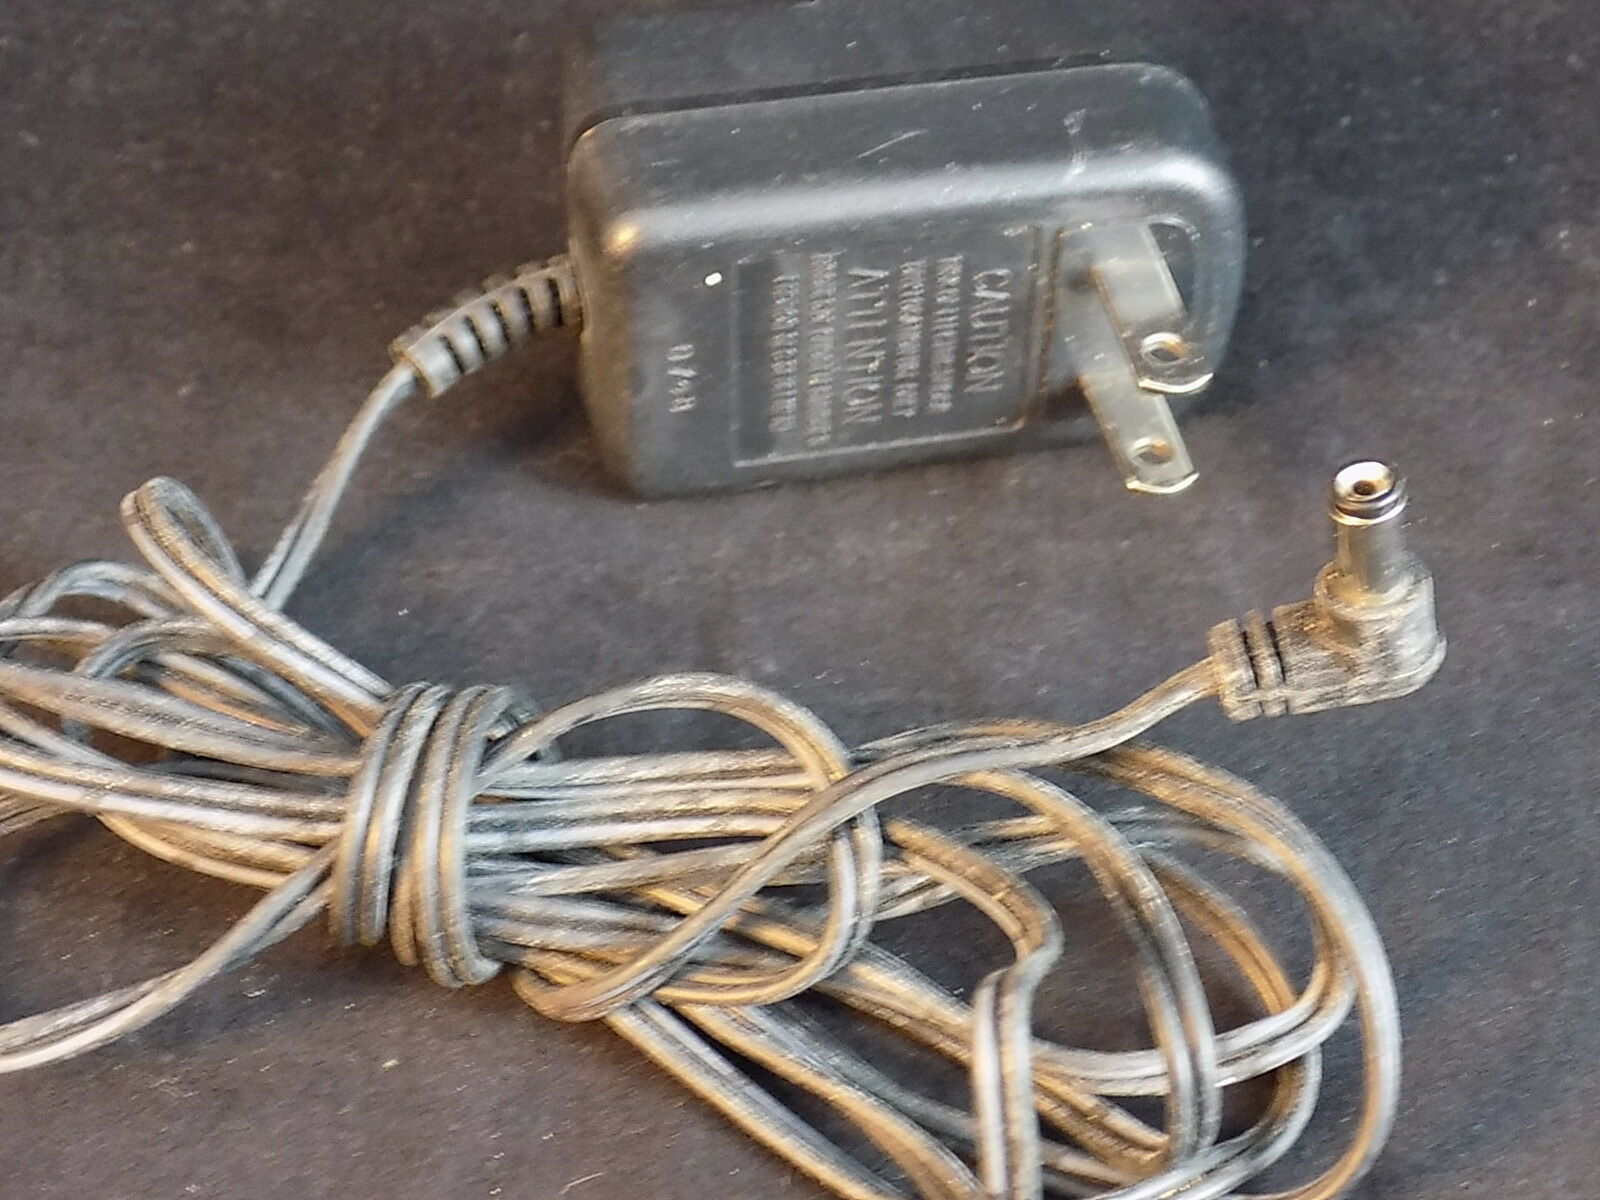 120vac to 9vdc Power Supply Adapter Model U090015D12 Transformer TESTED